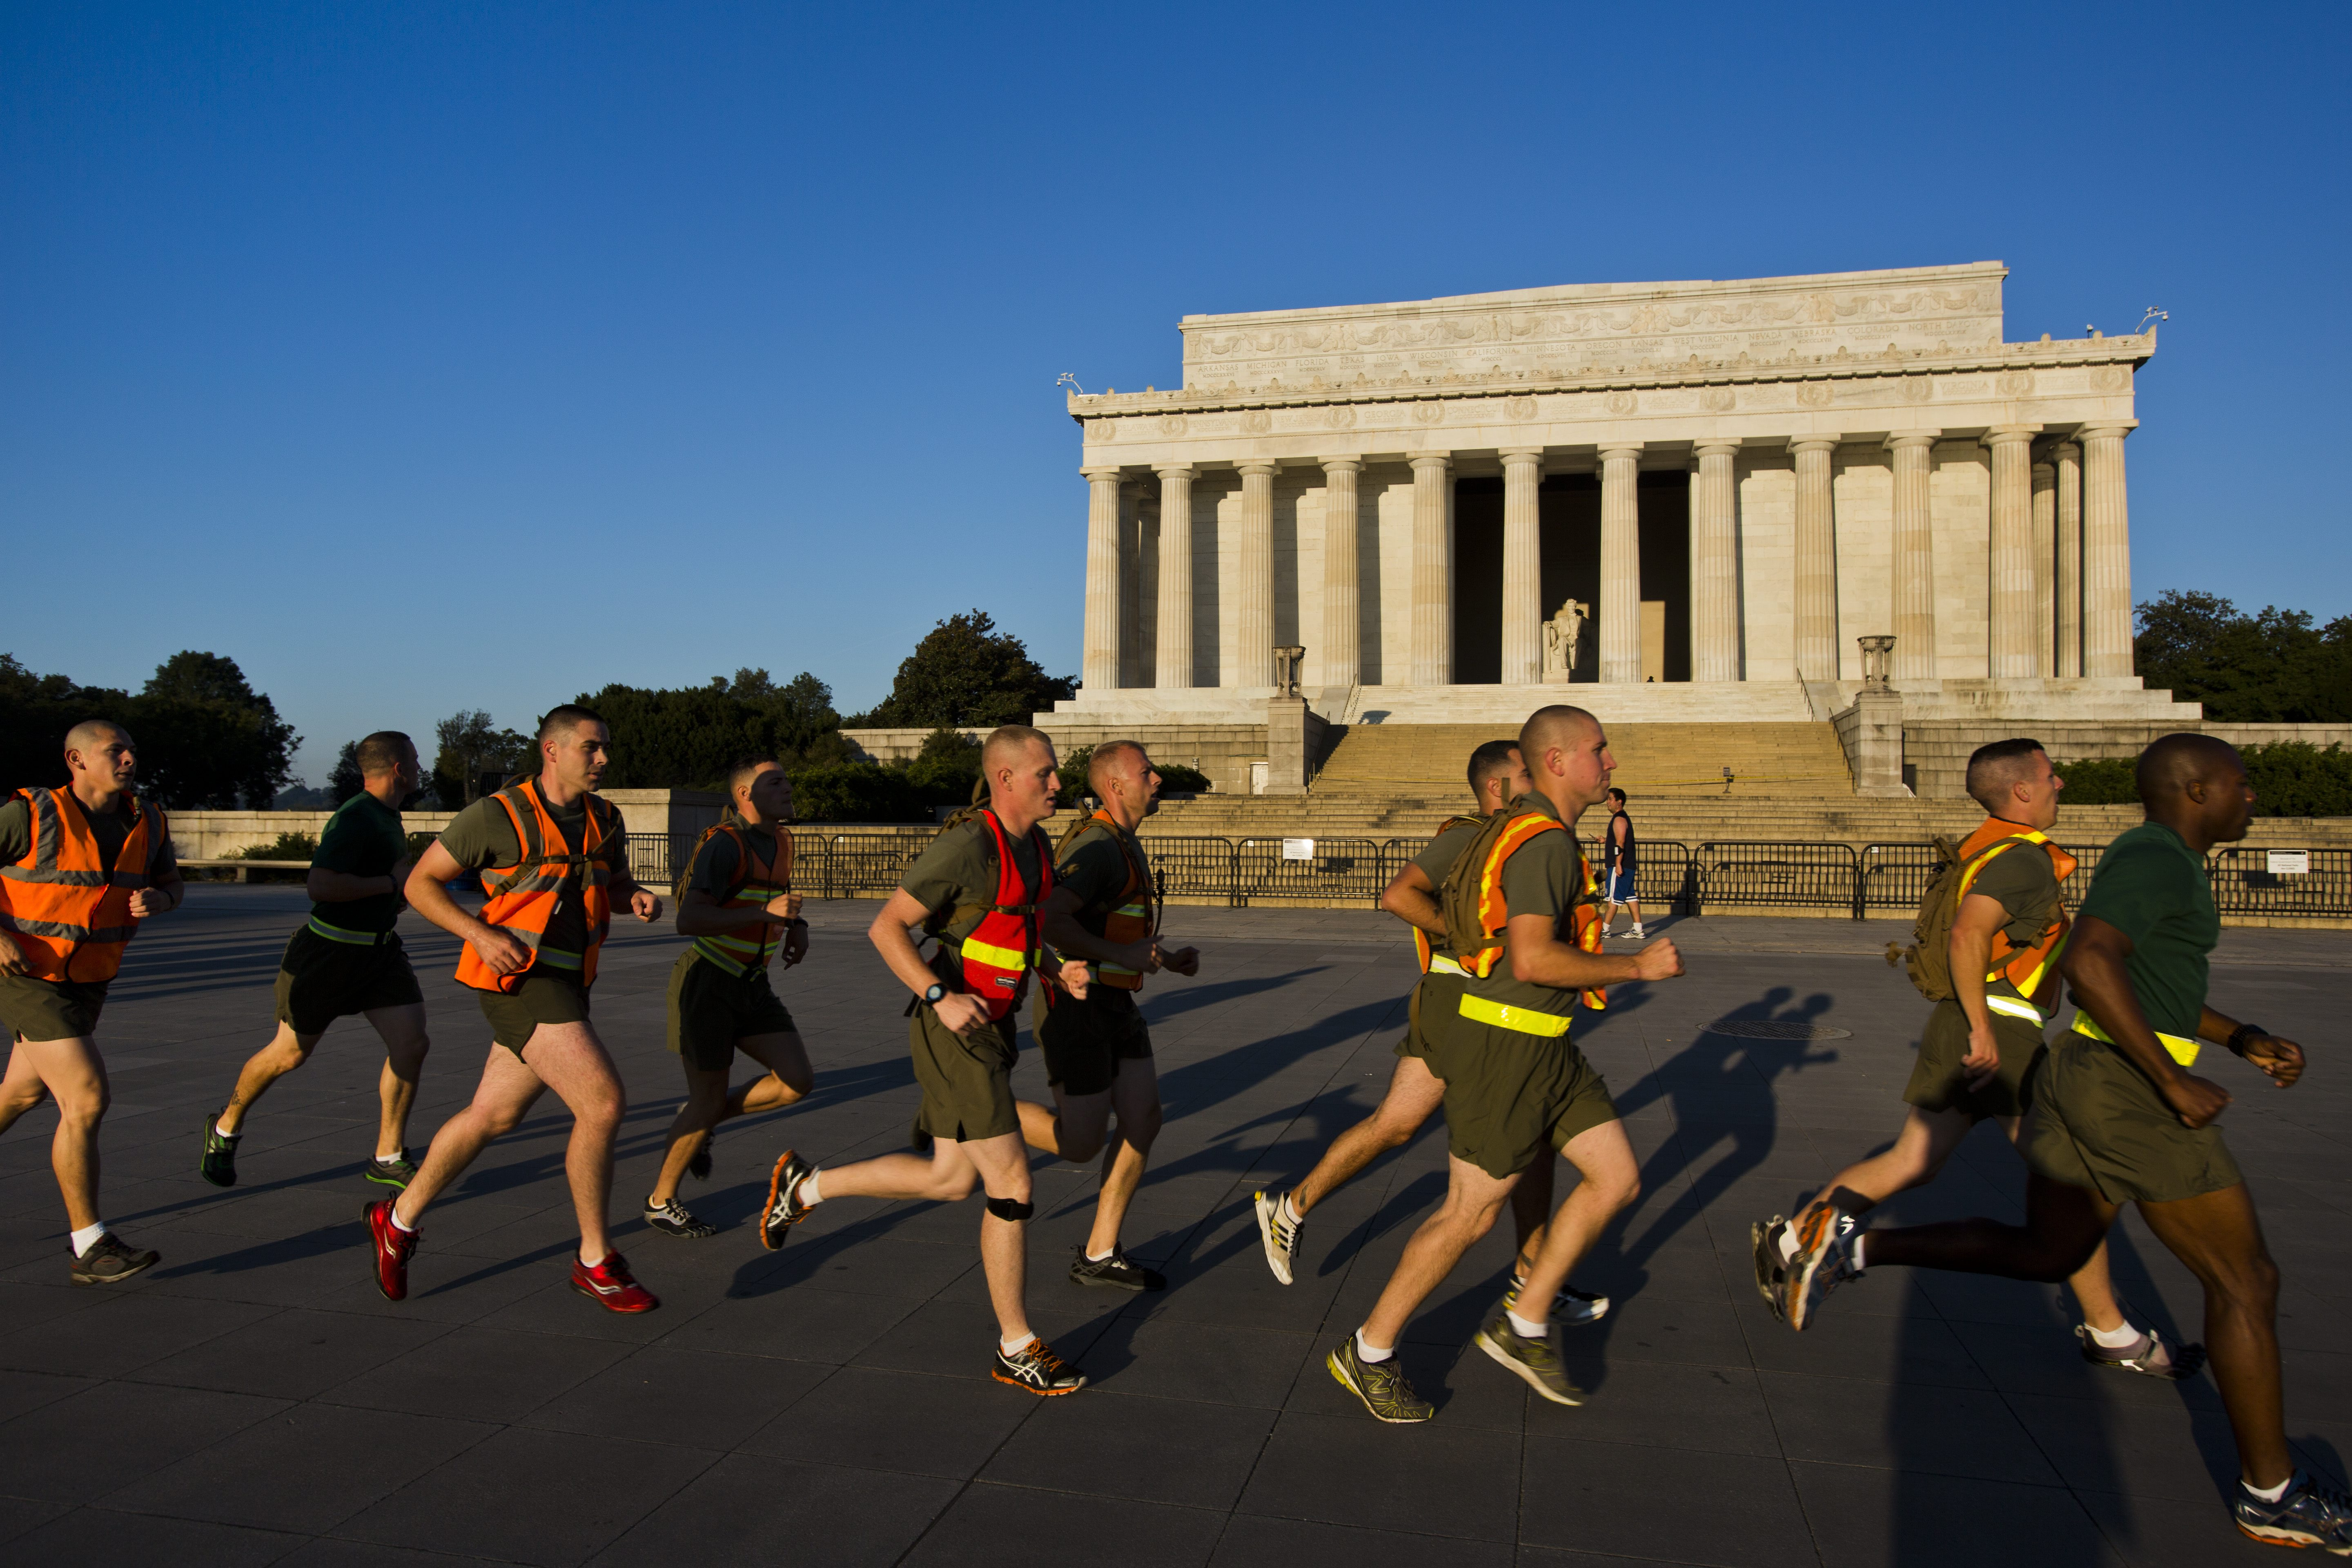 Marines jog past the Lincoln Memorial on the second day of a partial government shutdown in Washington, on October 2, 2013.